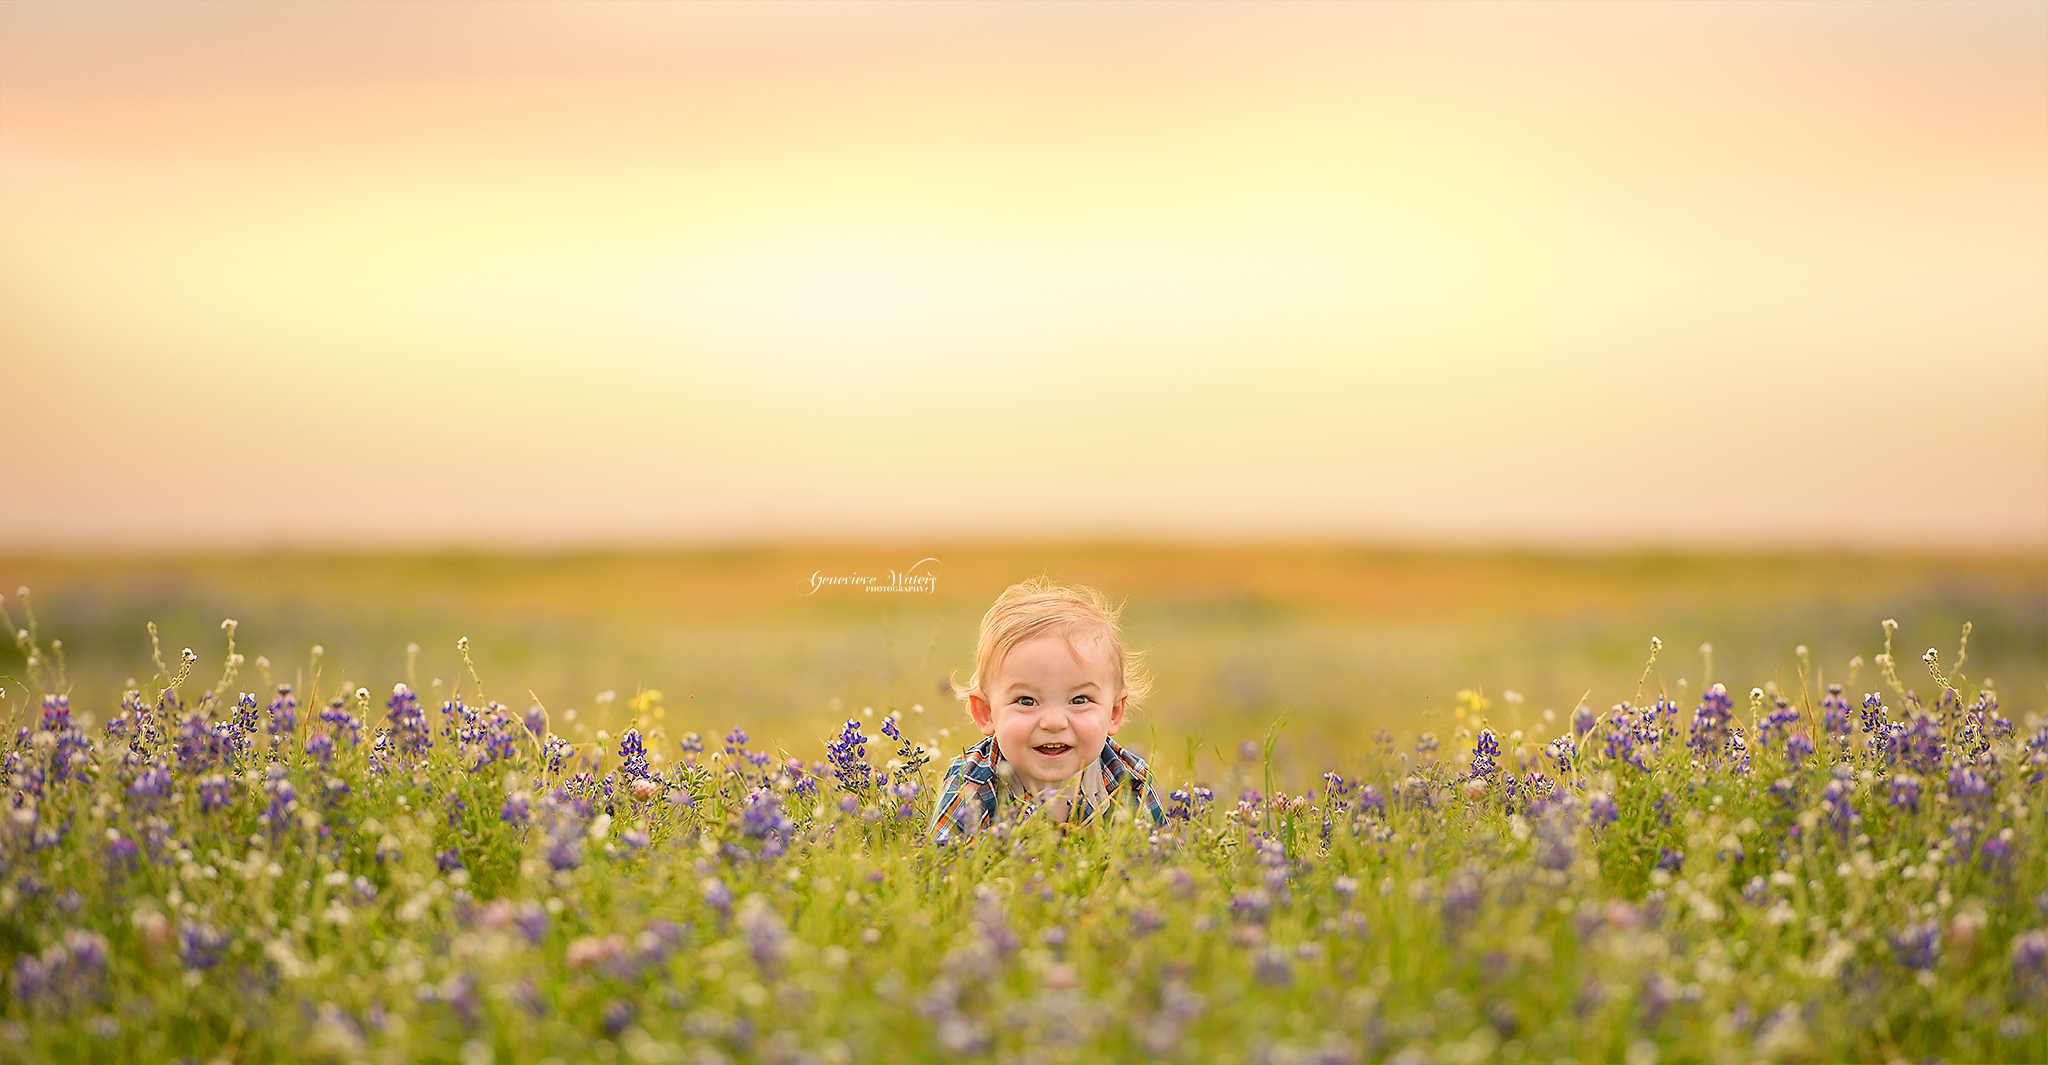 Oroville Photography | Spring photos | children's photography